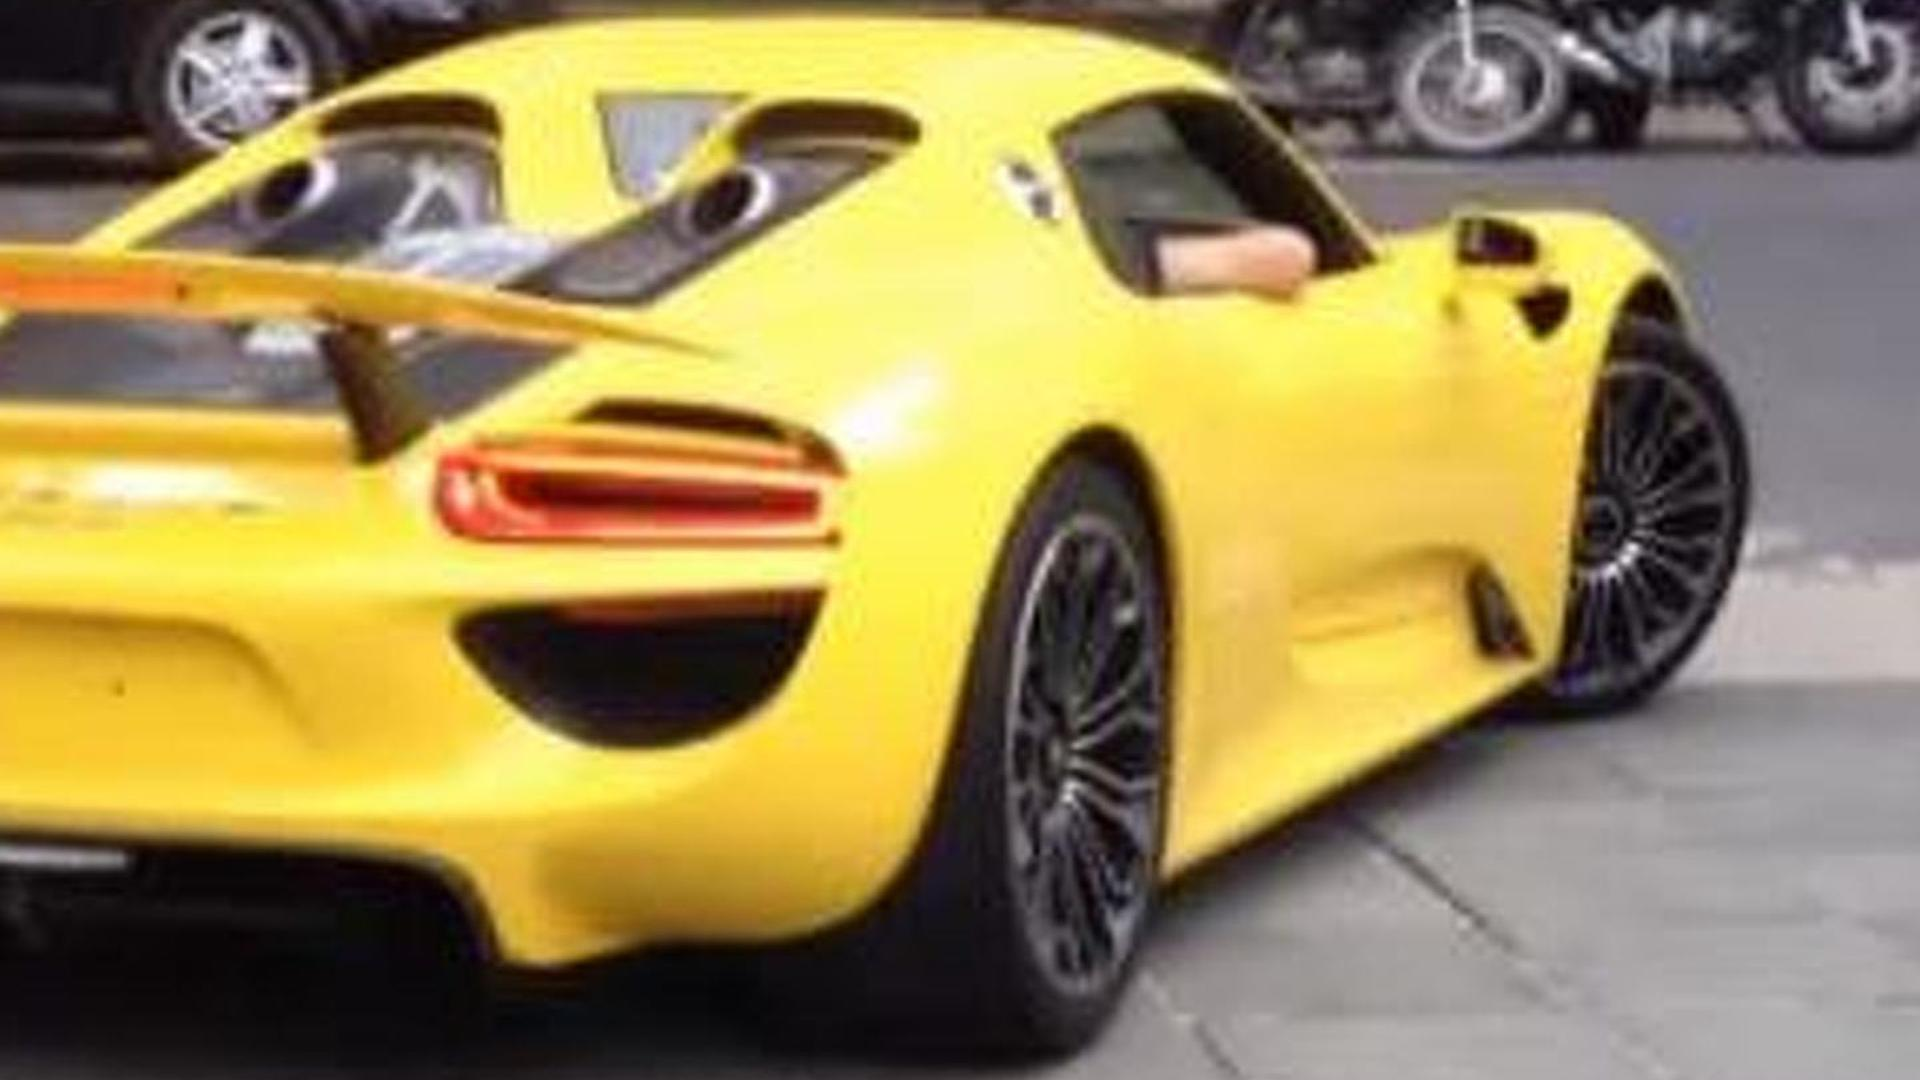 Porsche 918 Spyder with Racing Yellow paint spotted in Brazil [video]